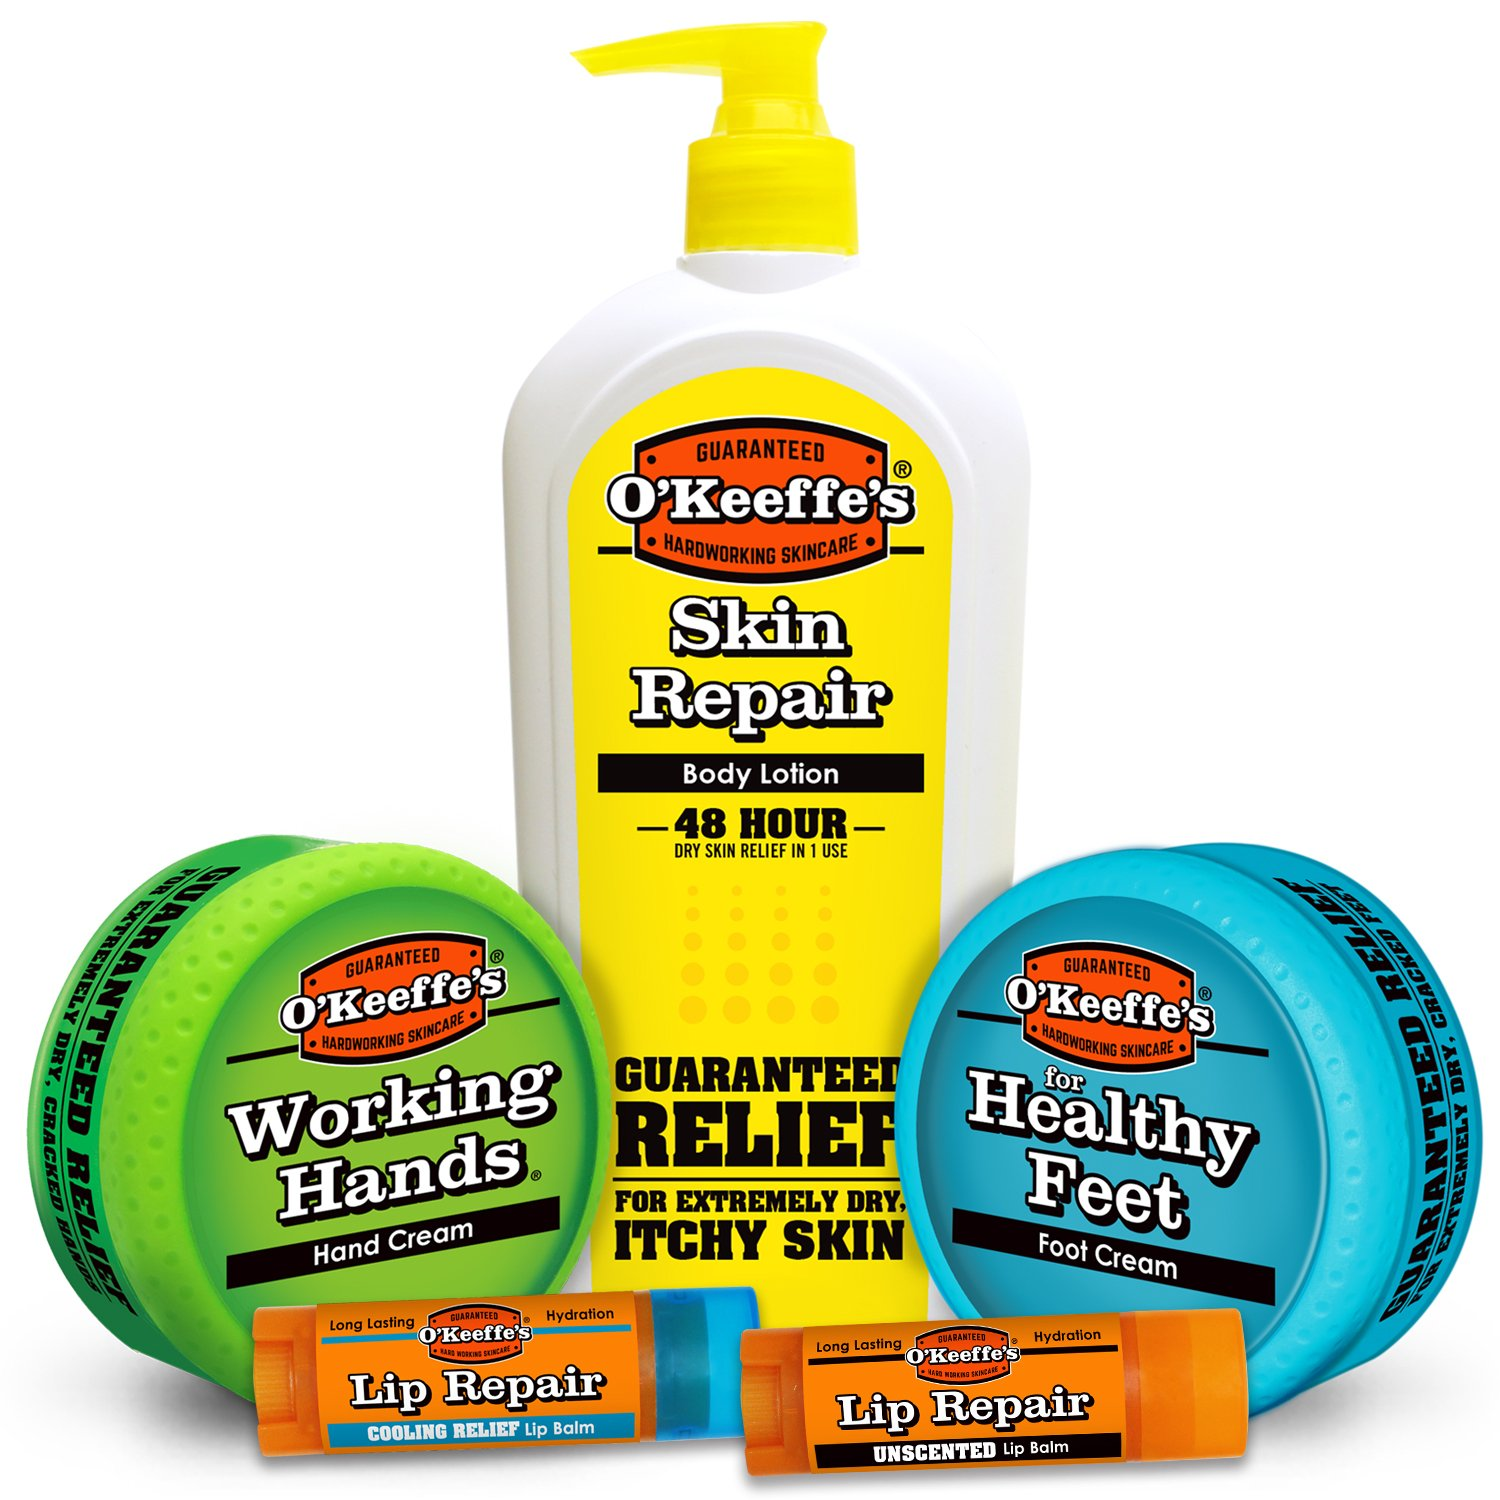 O'Keeffe's Hard Working Skin Care Variety Pack by O'Keeffe's